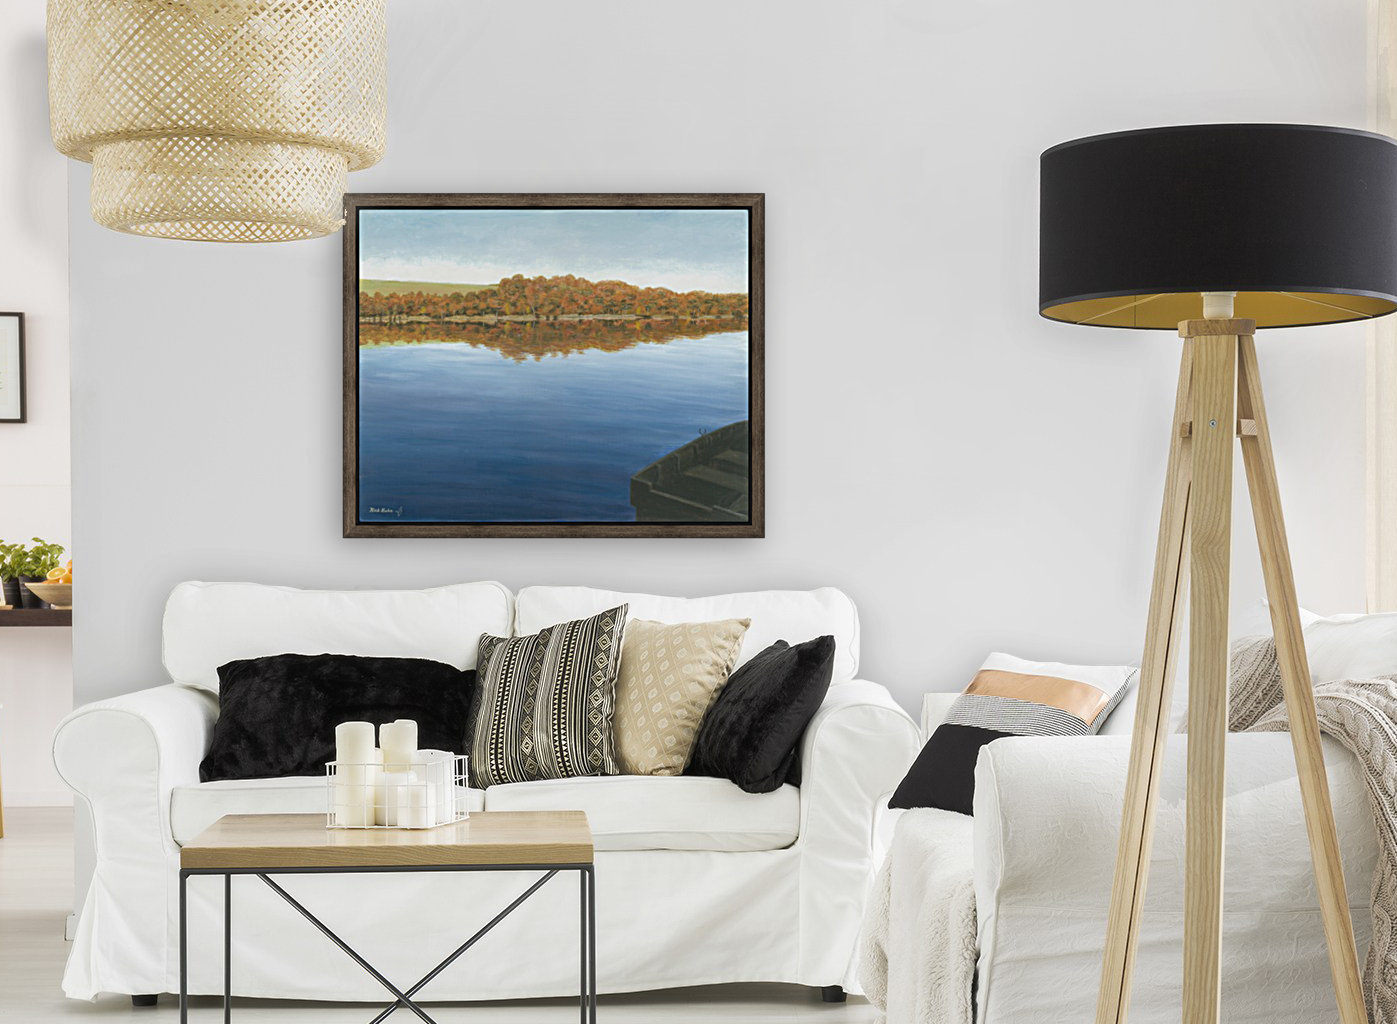 Rowboat on Taunton Lake - Newtown Scenes 16X20 with Floating Frame